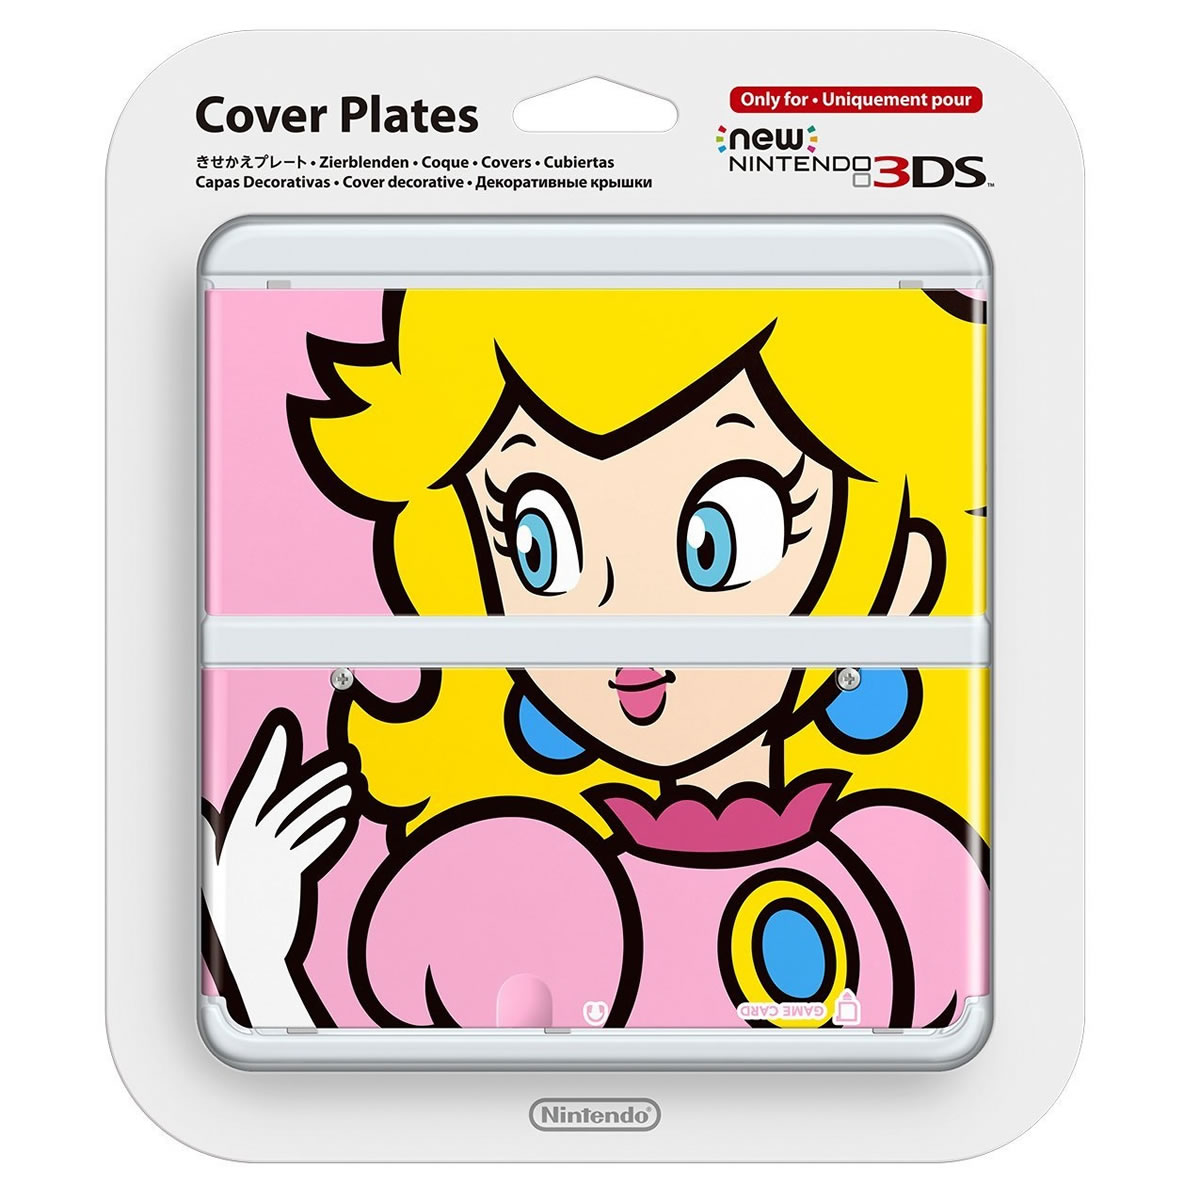 NEW NINTENDO 3DS COVERPLATE 004 Peach (New 3DS)